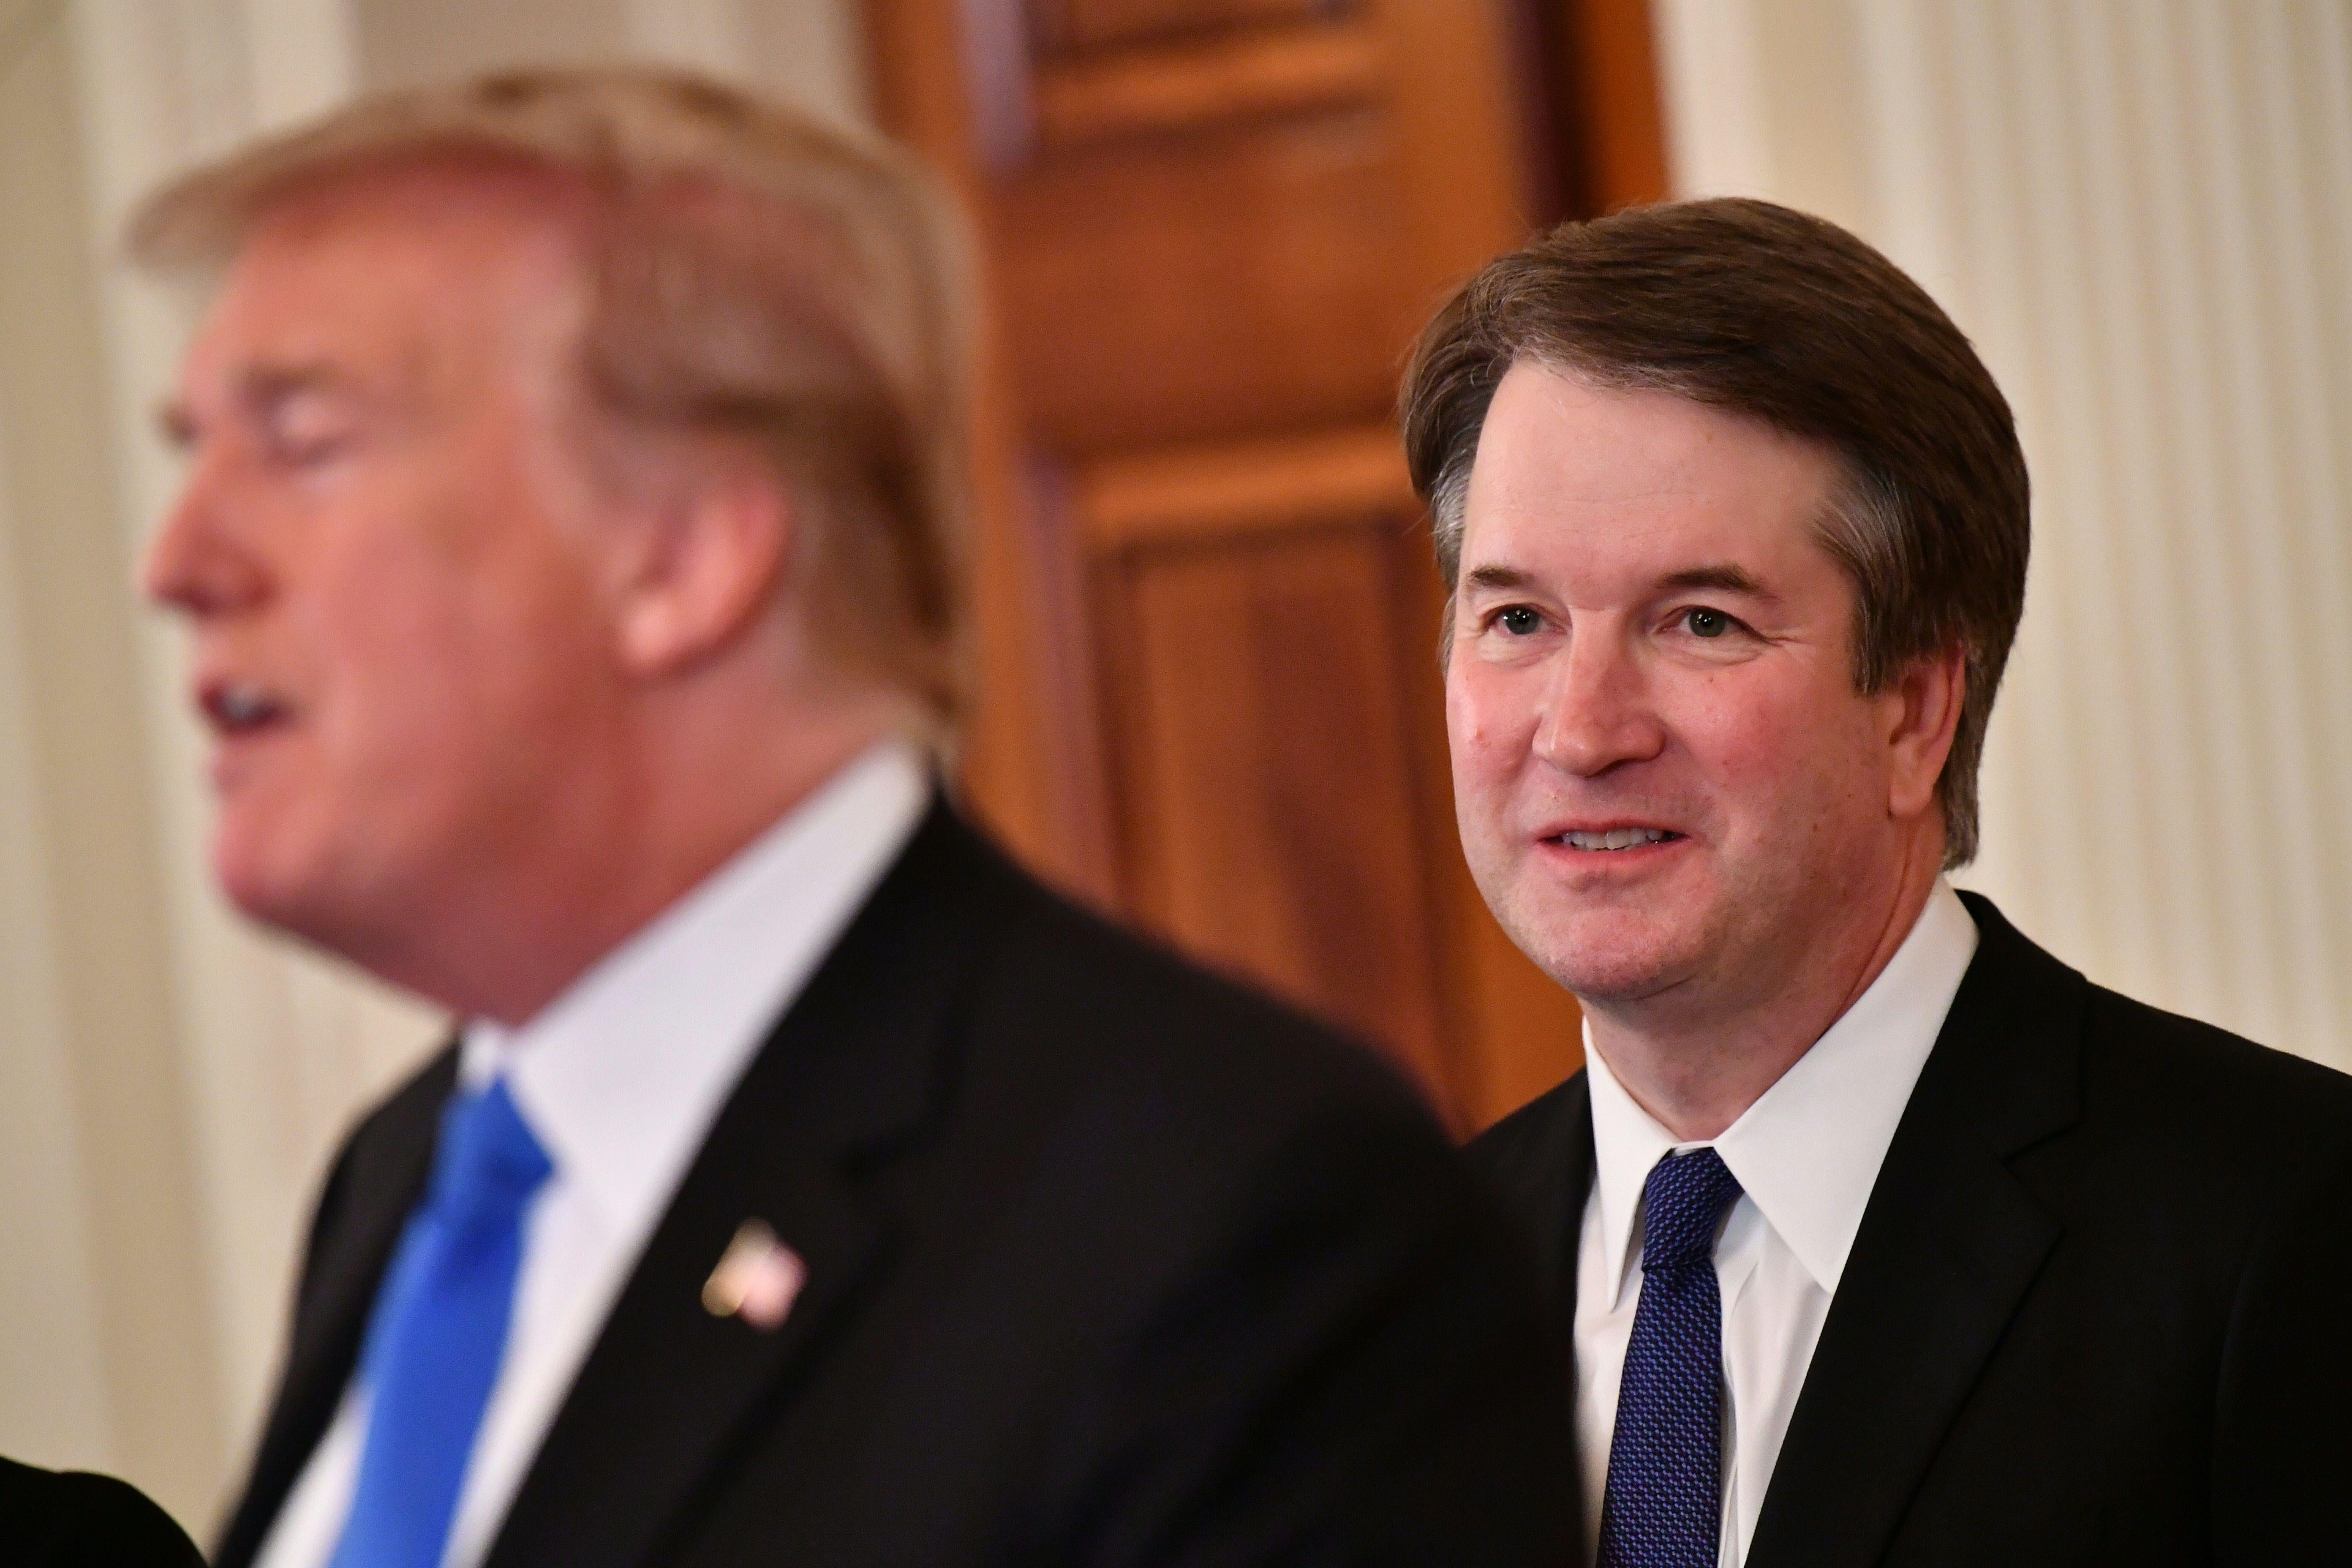 Supreme Court nominee Brett Kavanaugh listens to U.S. President Donald Trump announcing his nomination in the East Room of the White House on July 9, 2018 in Washington, DC. (Photo by MANDEL NGAN / AFP)        (Photo credit should read MANDEL NGAN/AFP/Getty Images)